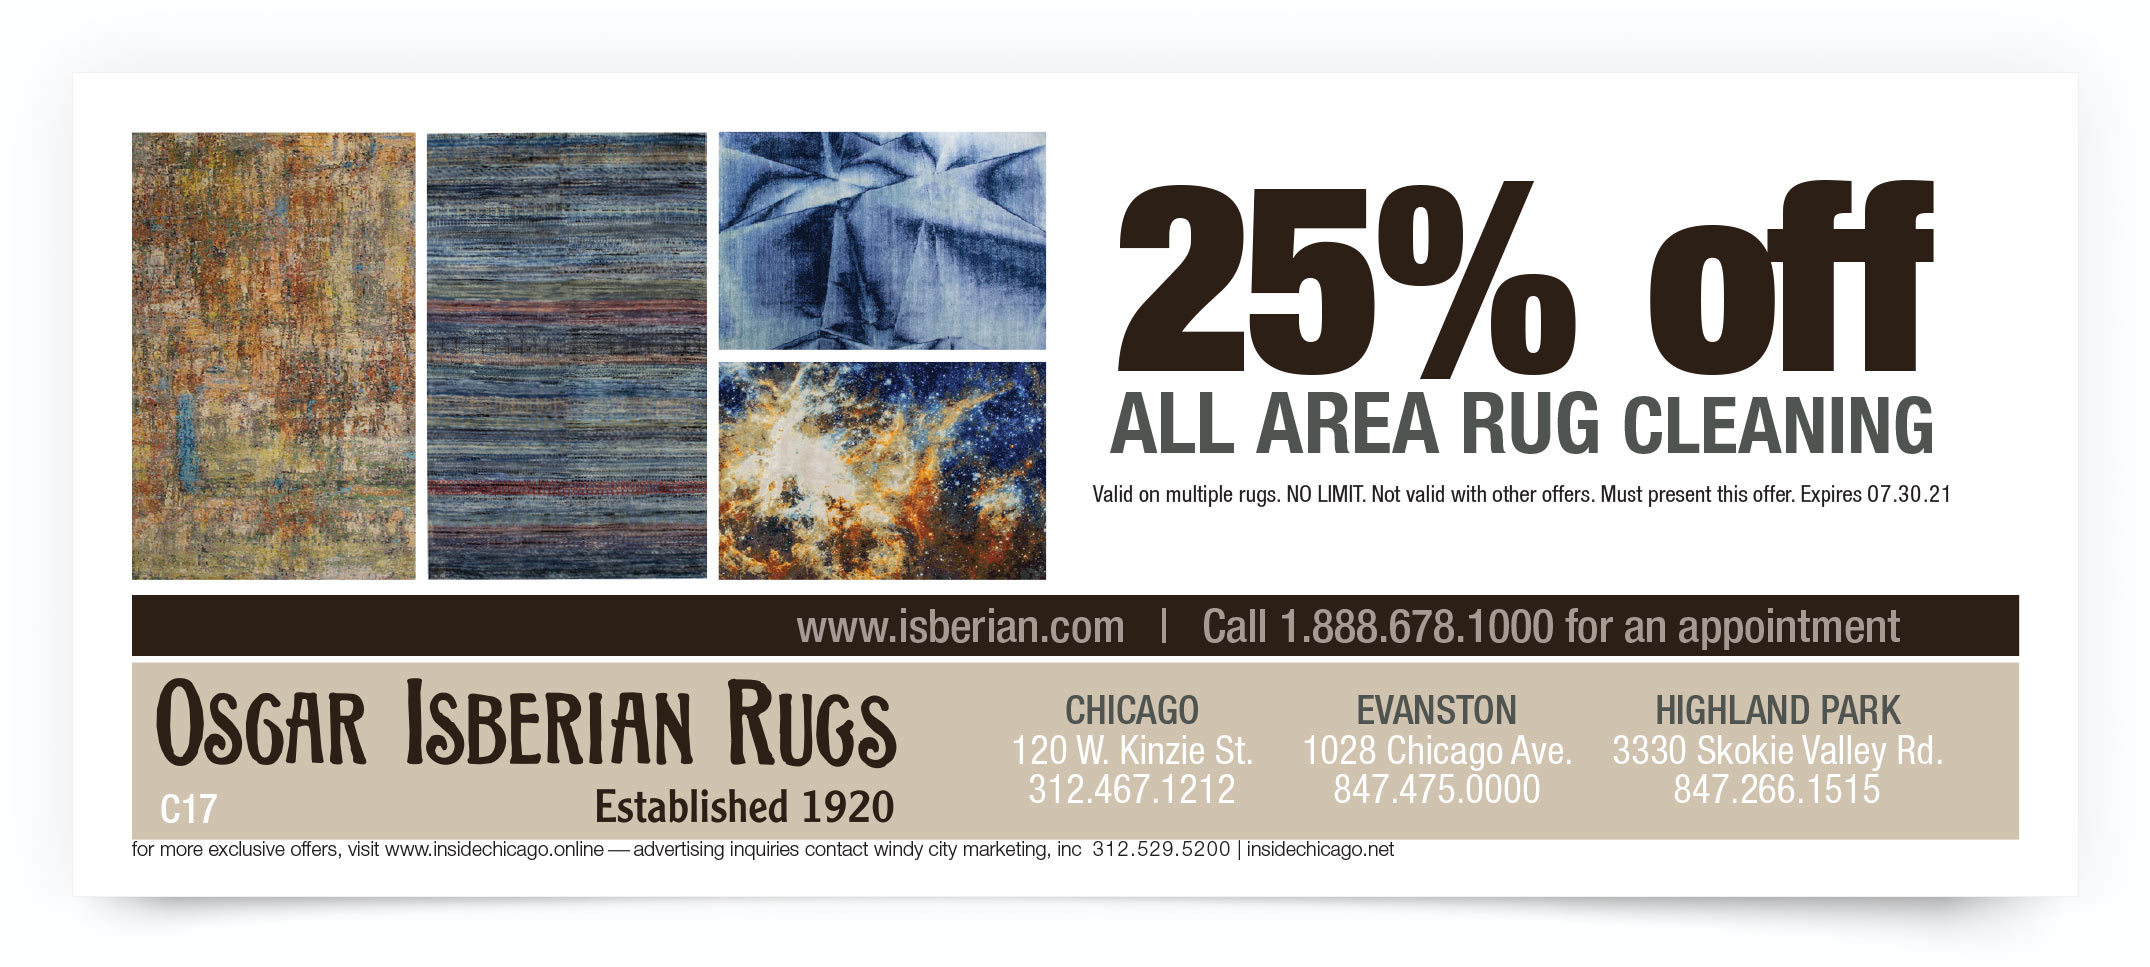 Oscar Isberian Rugs Chicago Coupon Offer